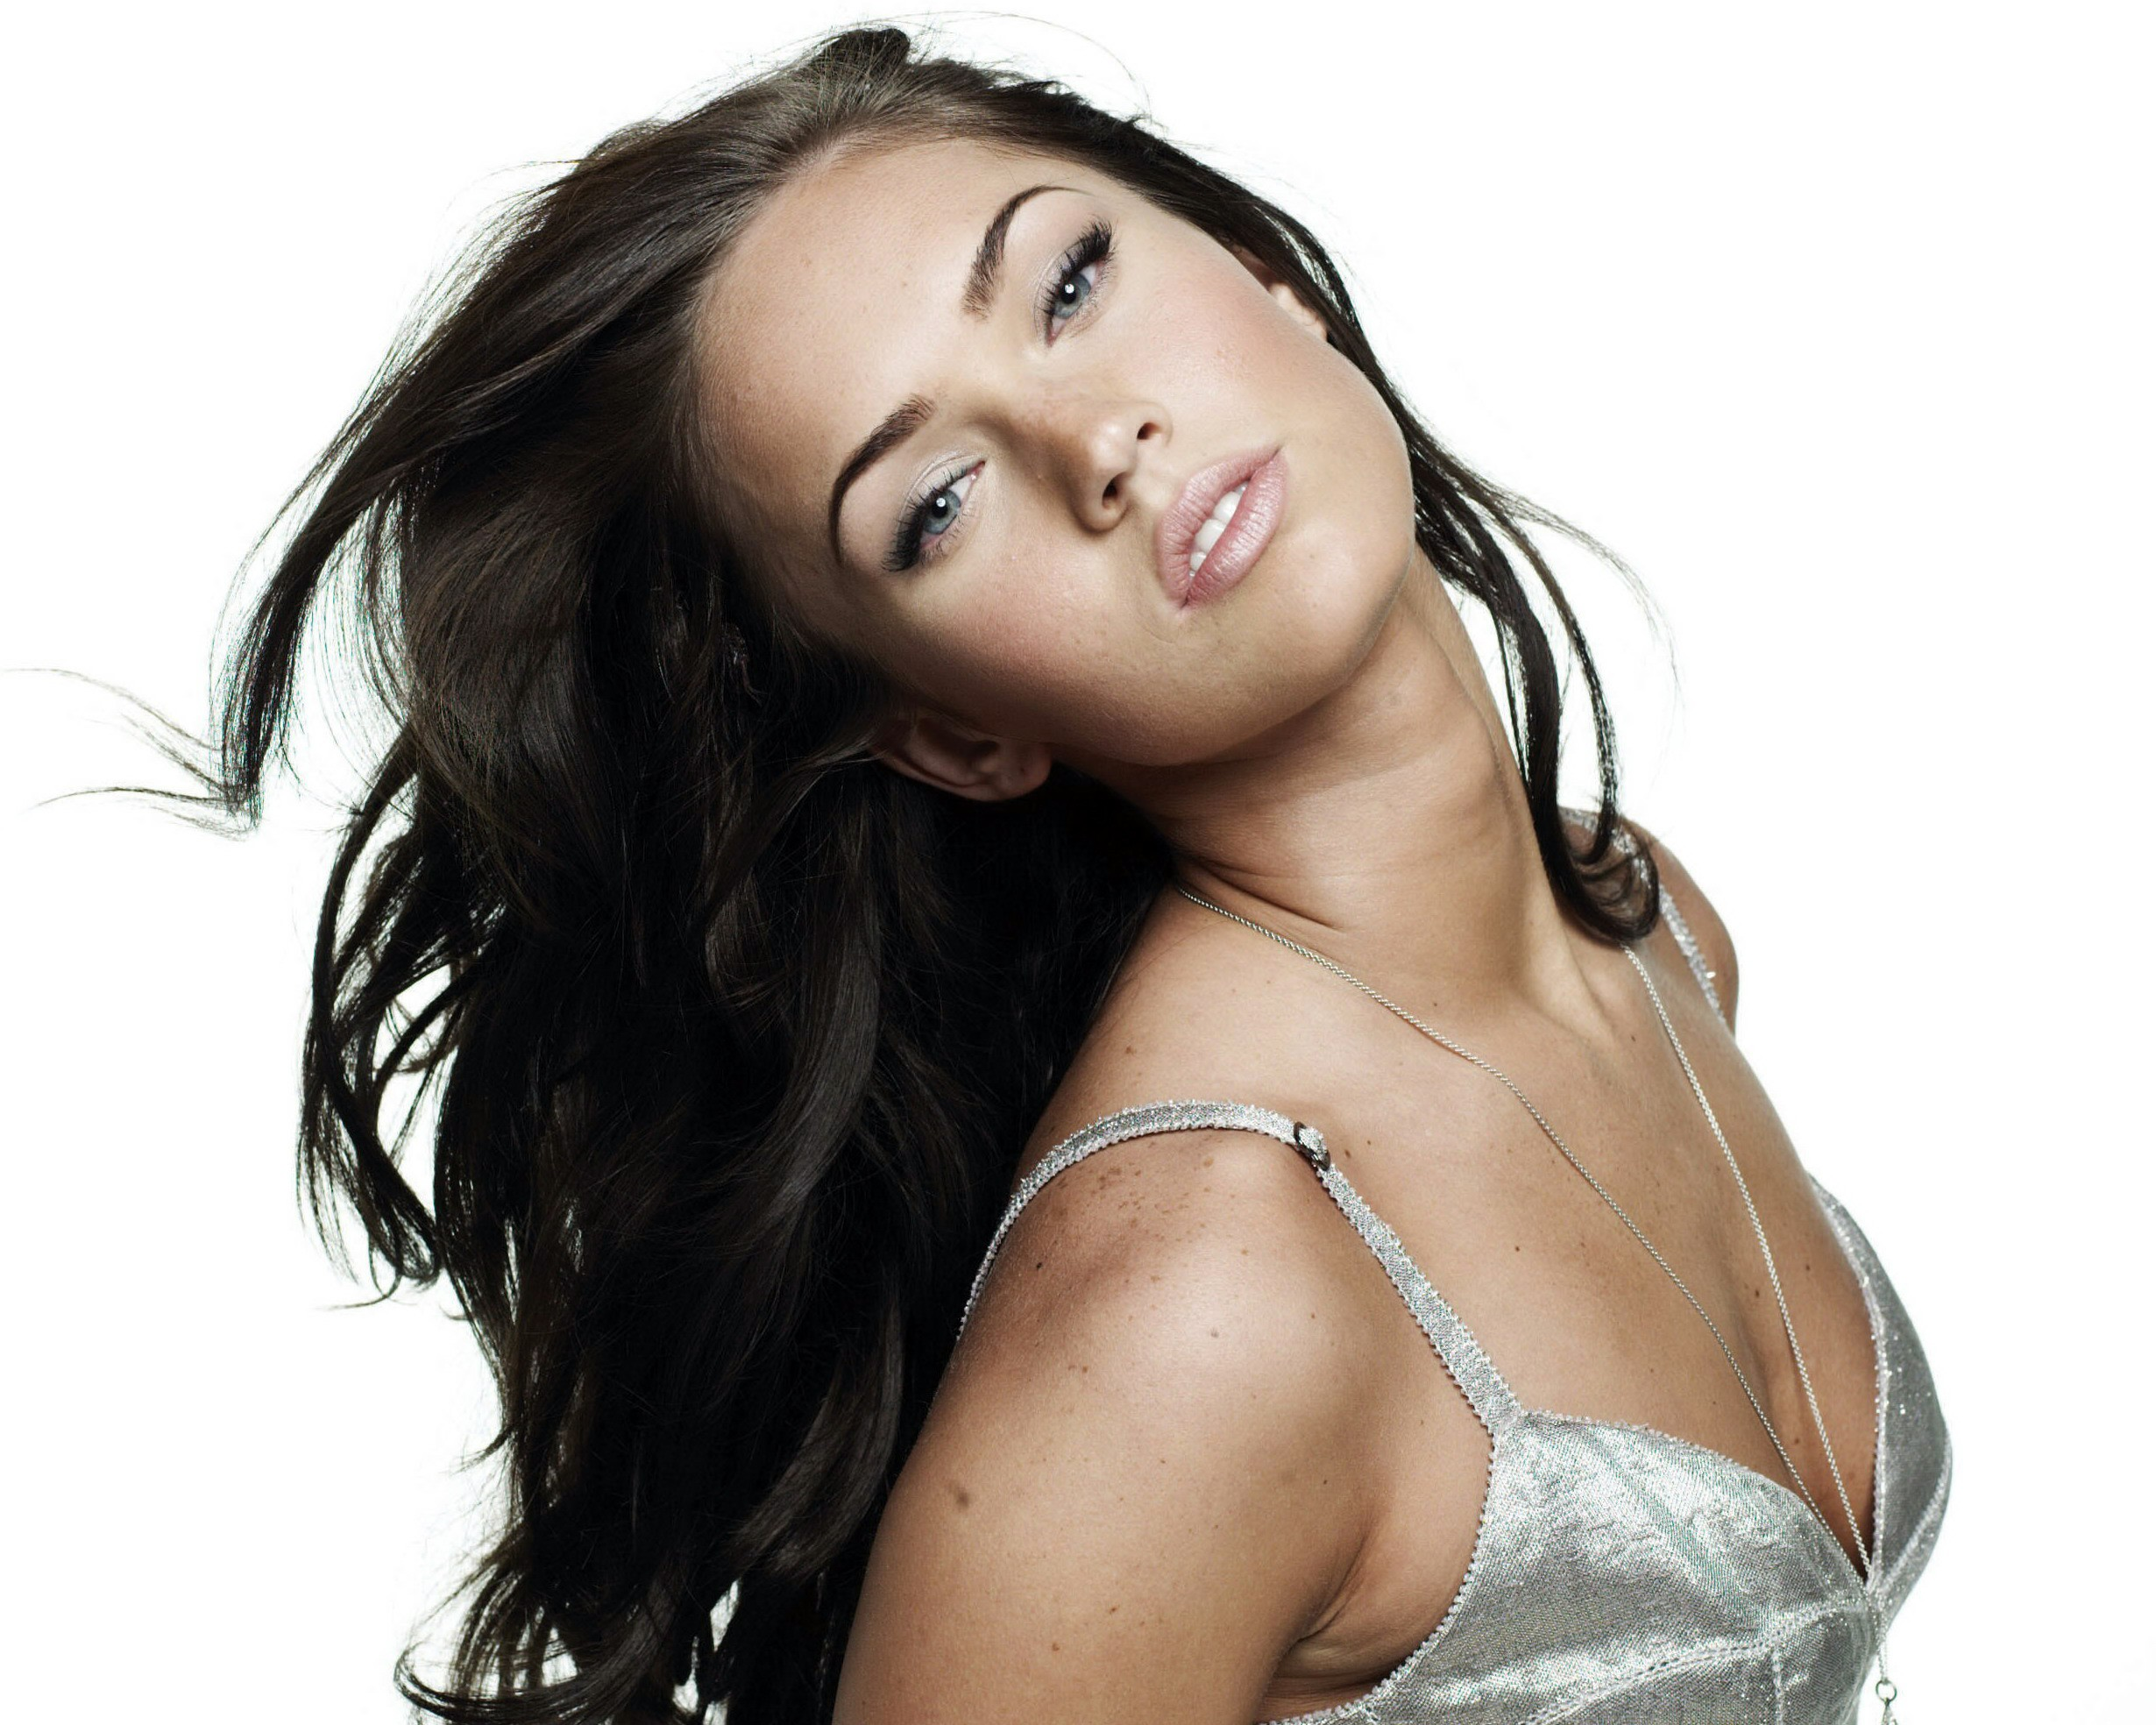 Wallpaper: primo piano di Megan Fox